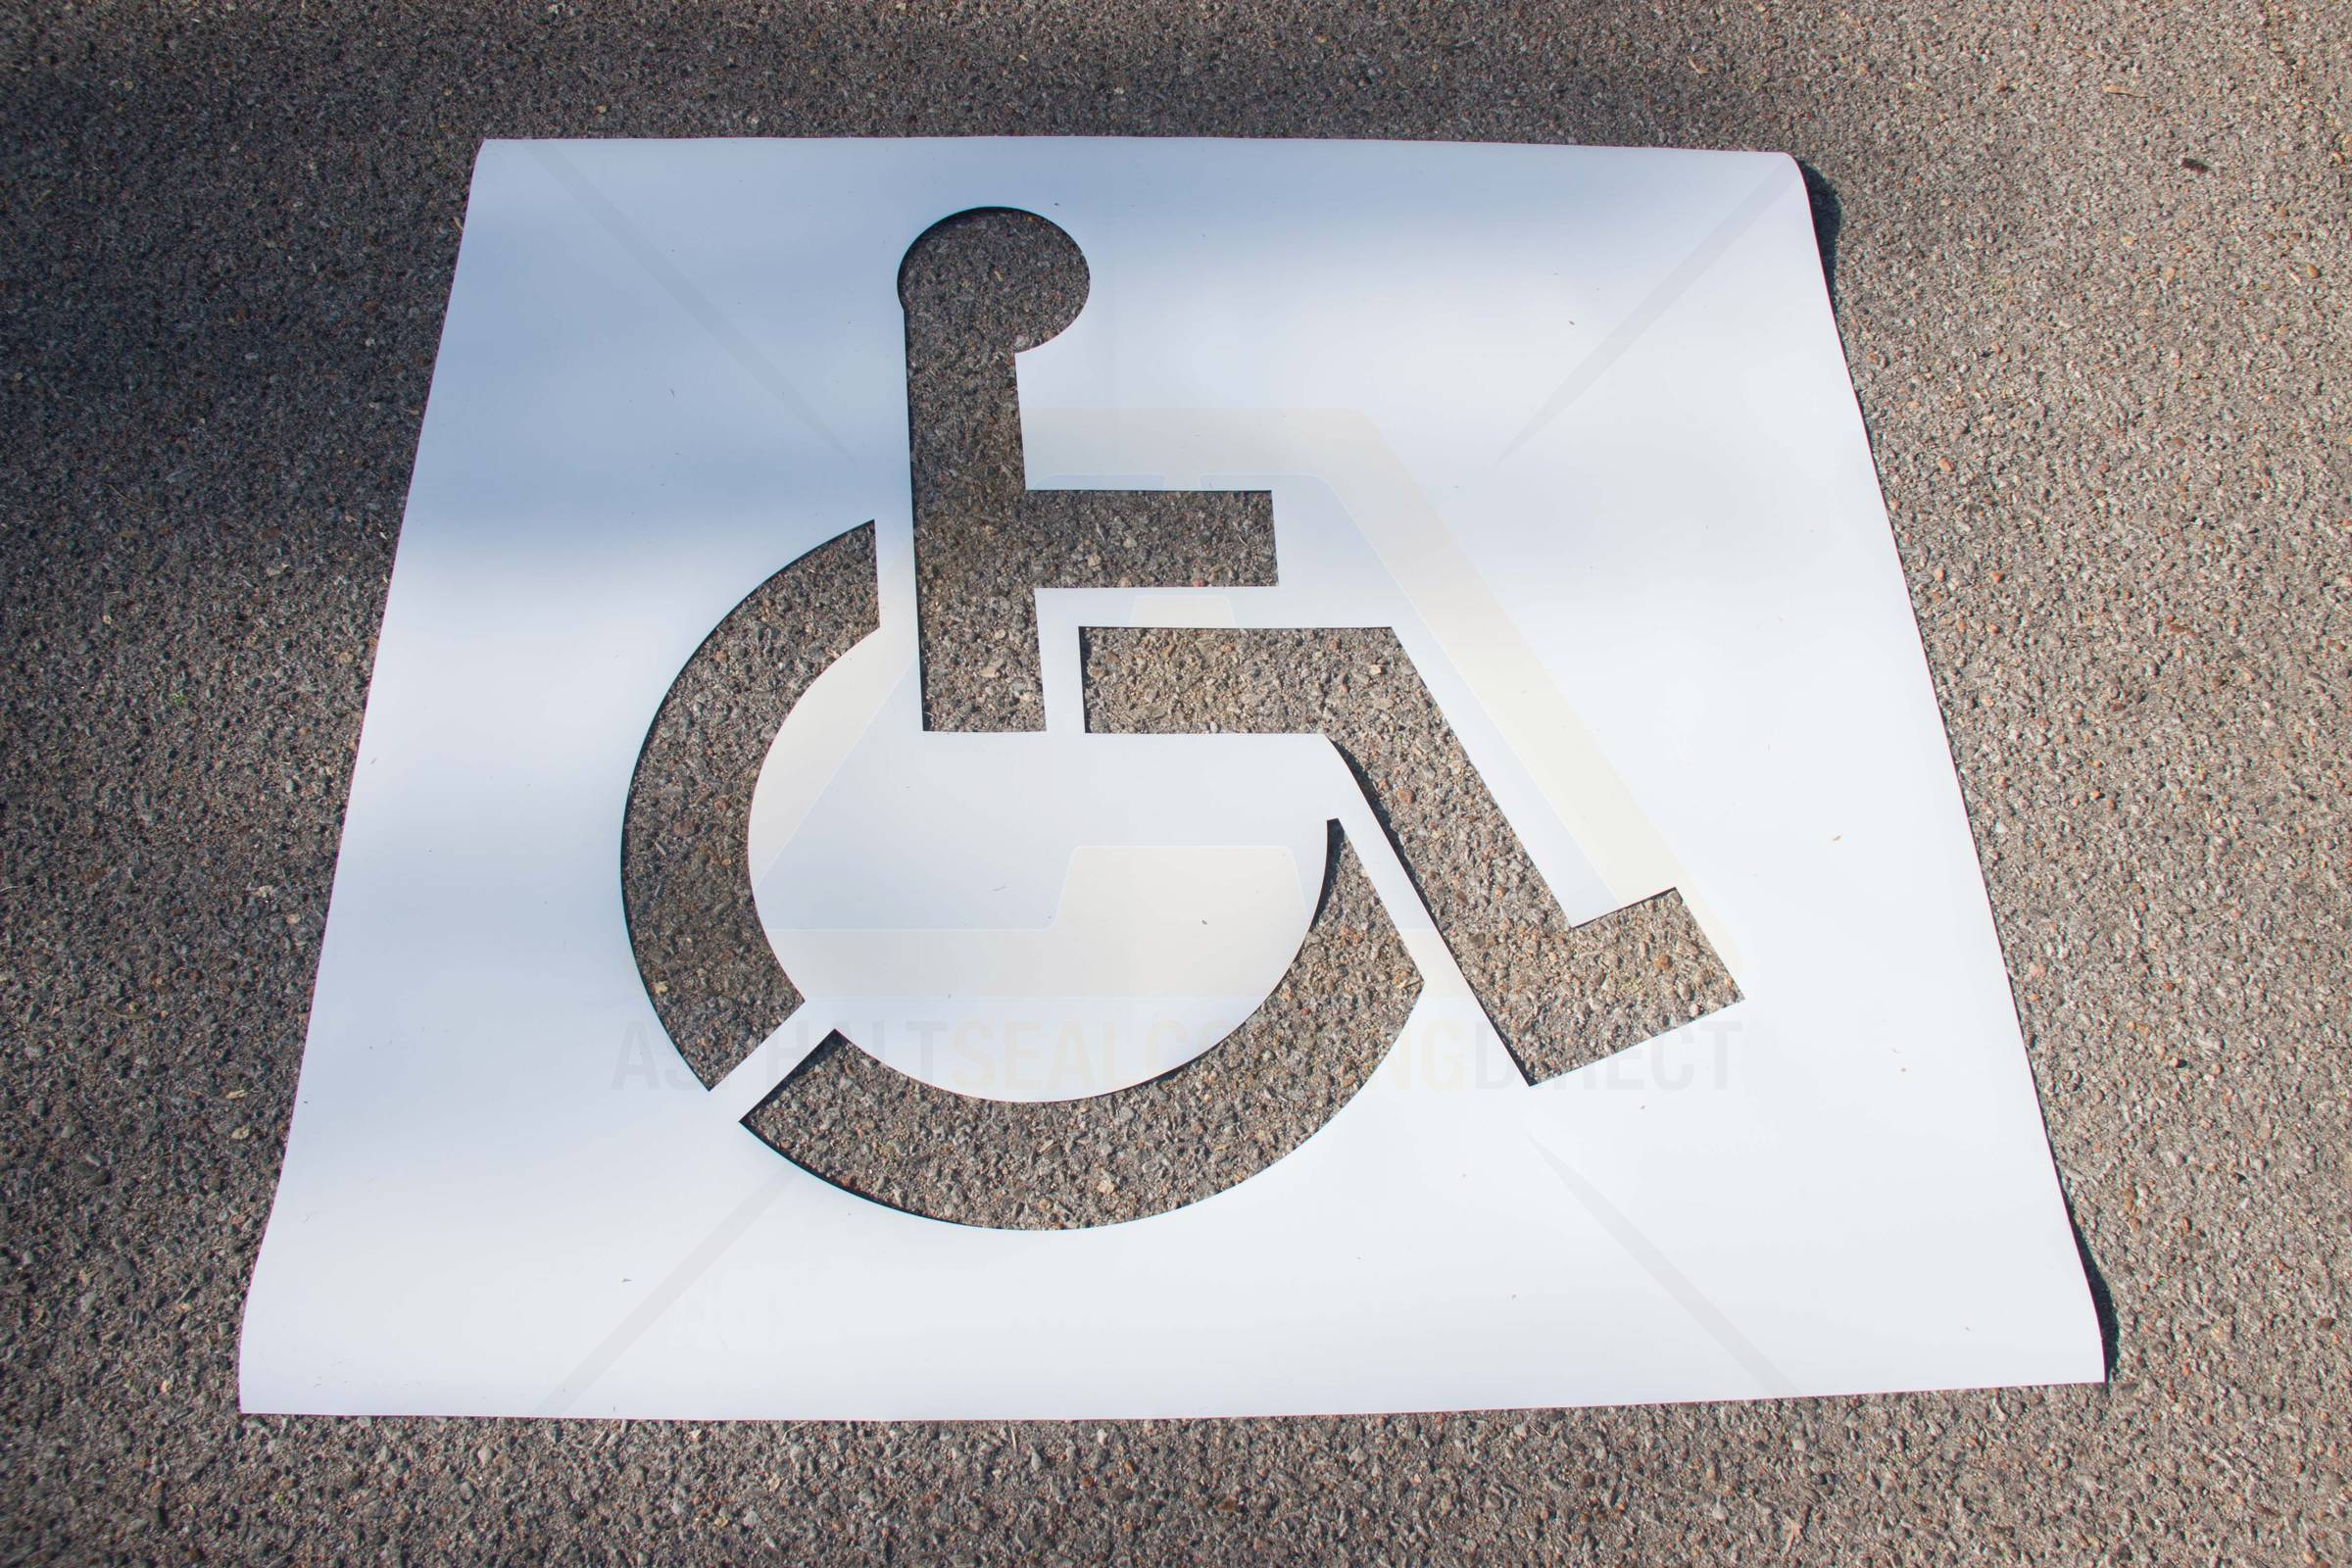 Big a disposable diy handicap stencil asphalt sealcoating direct image do it yourself handicap stencil solutioingenieria